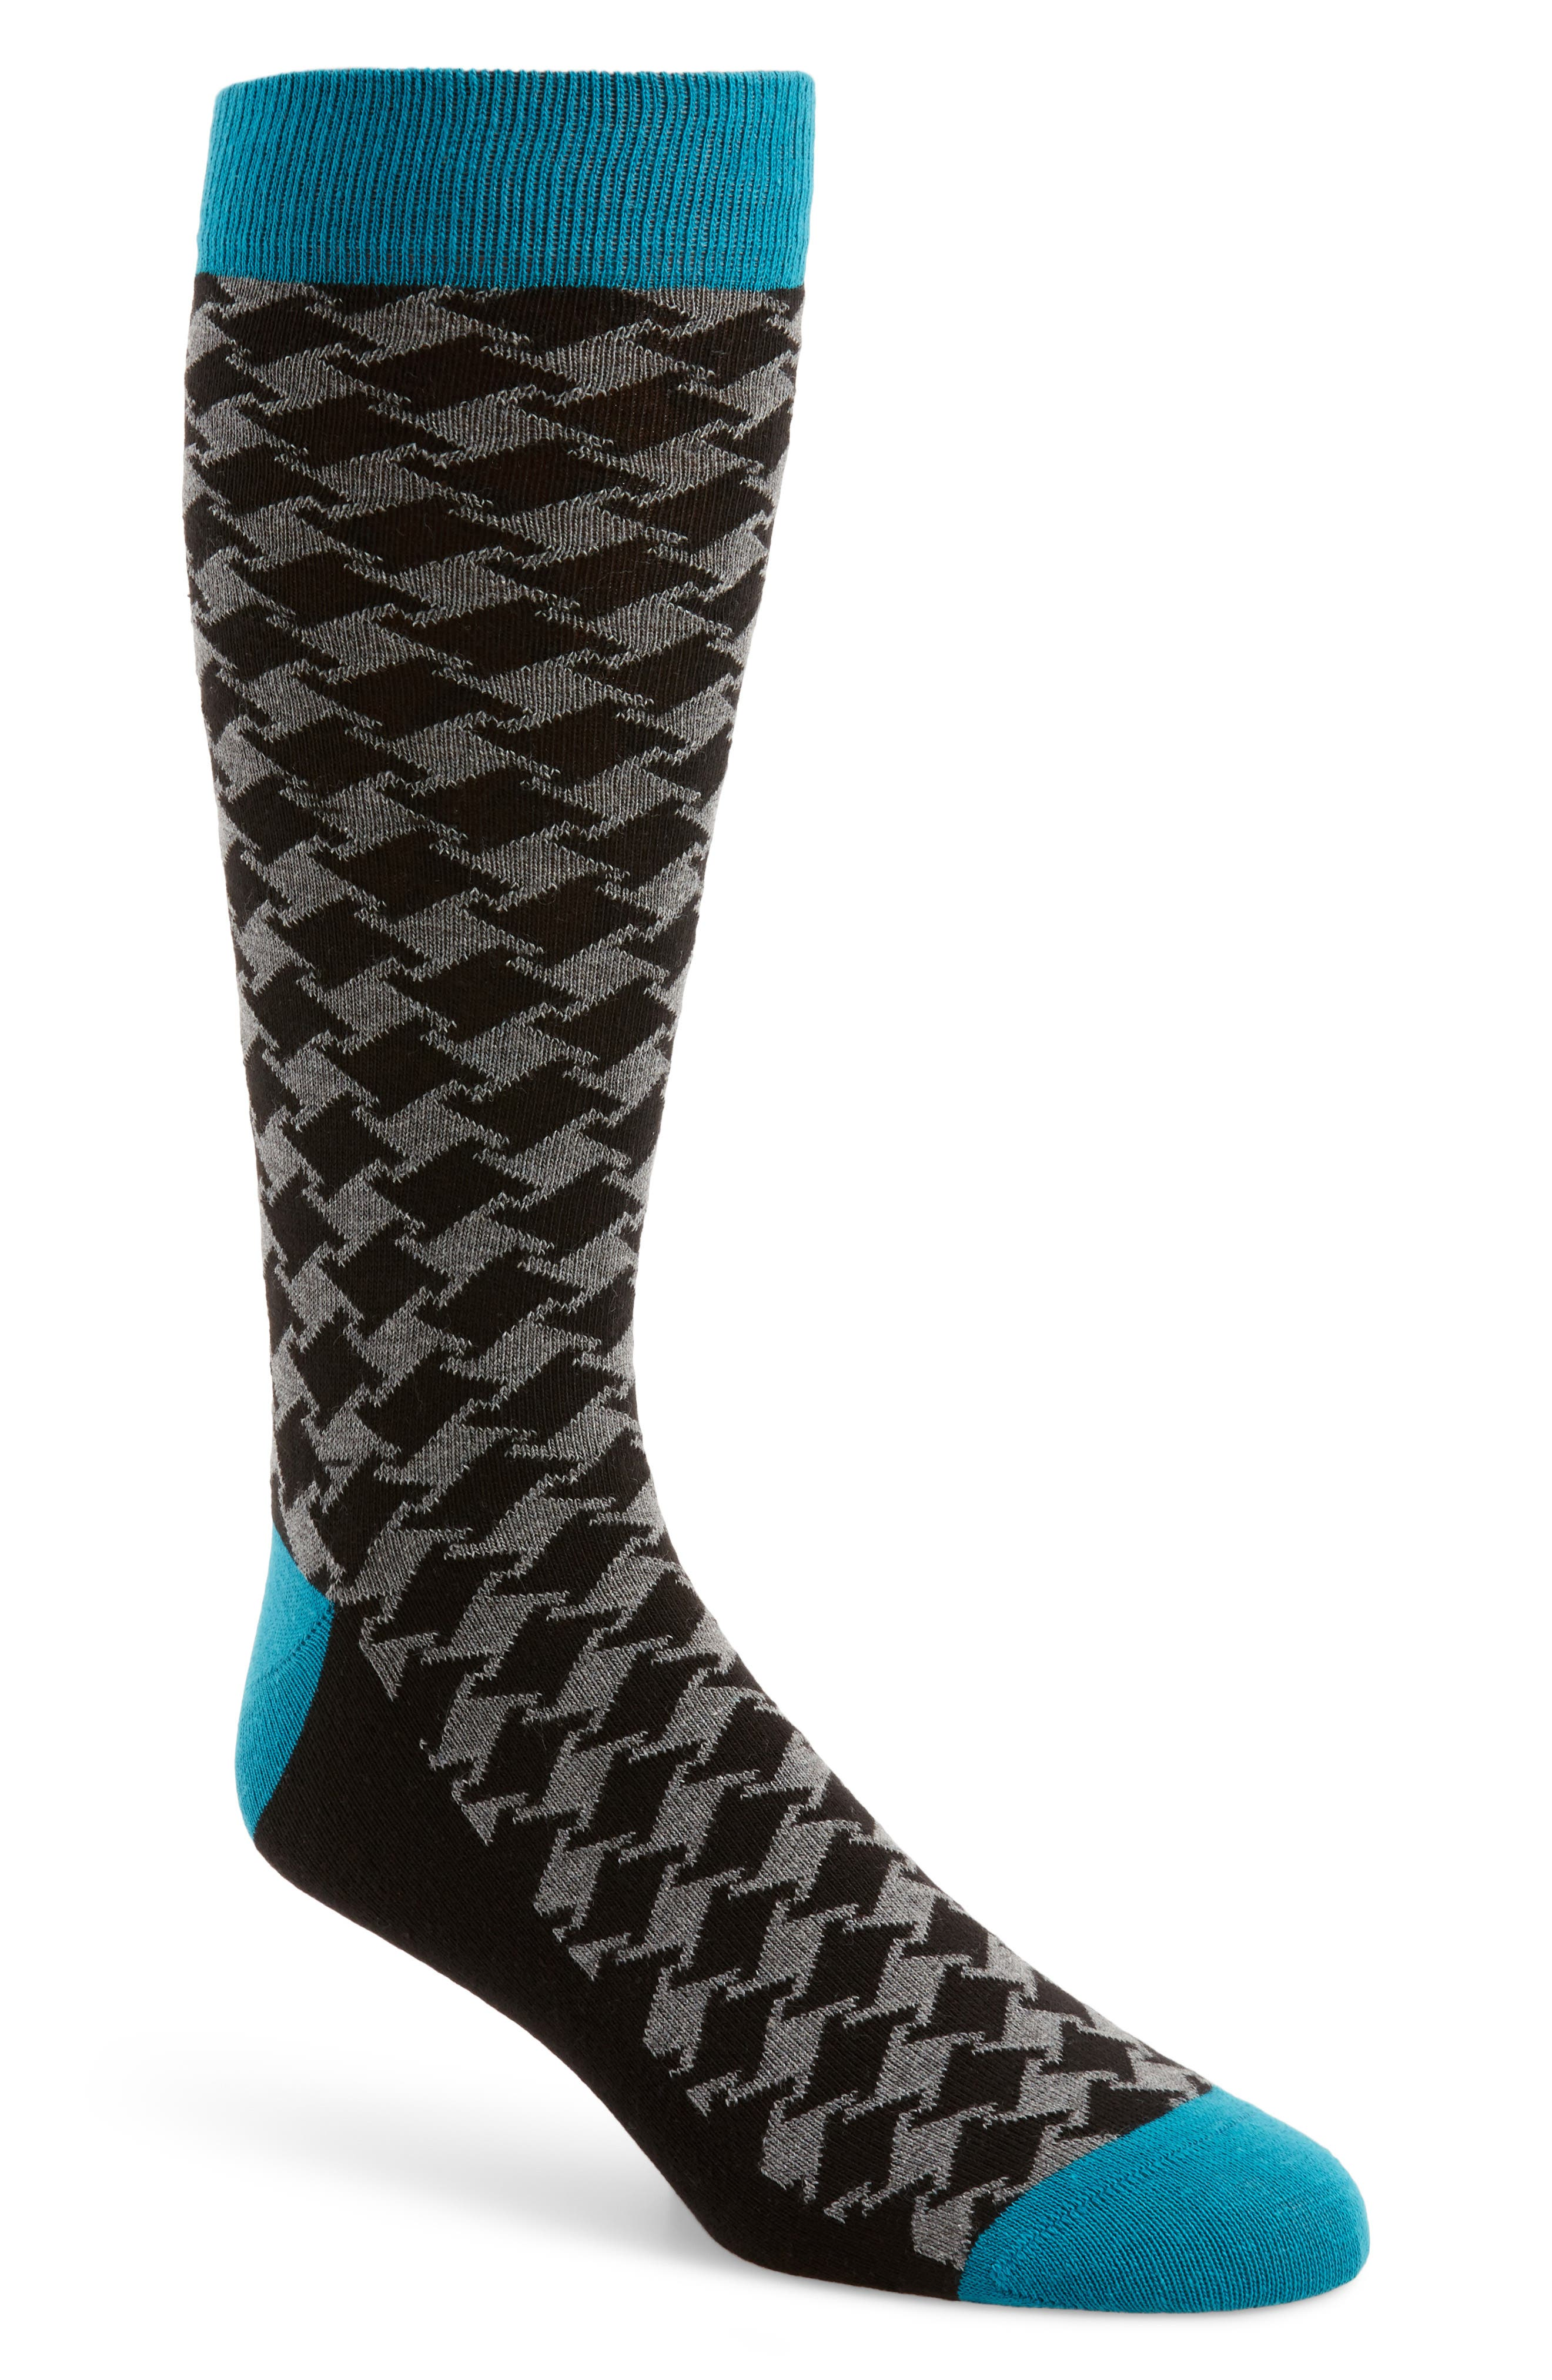 Houndstooth Socks,                             Main thumbnail 1, color,                             Teal